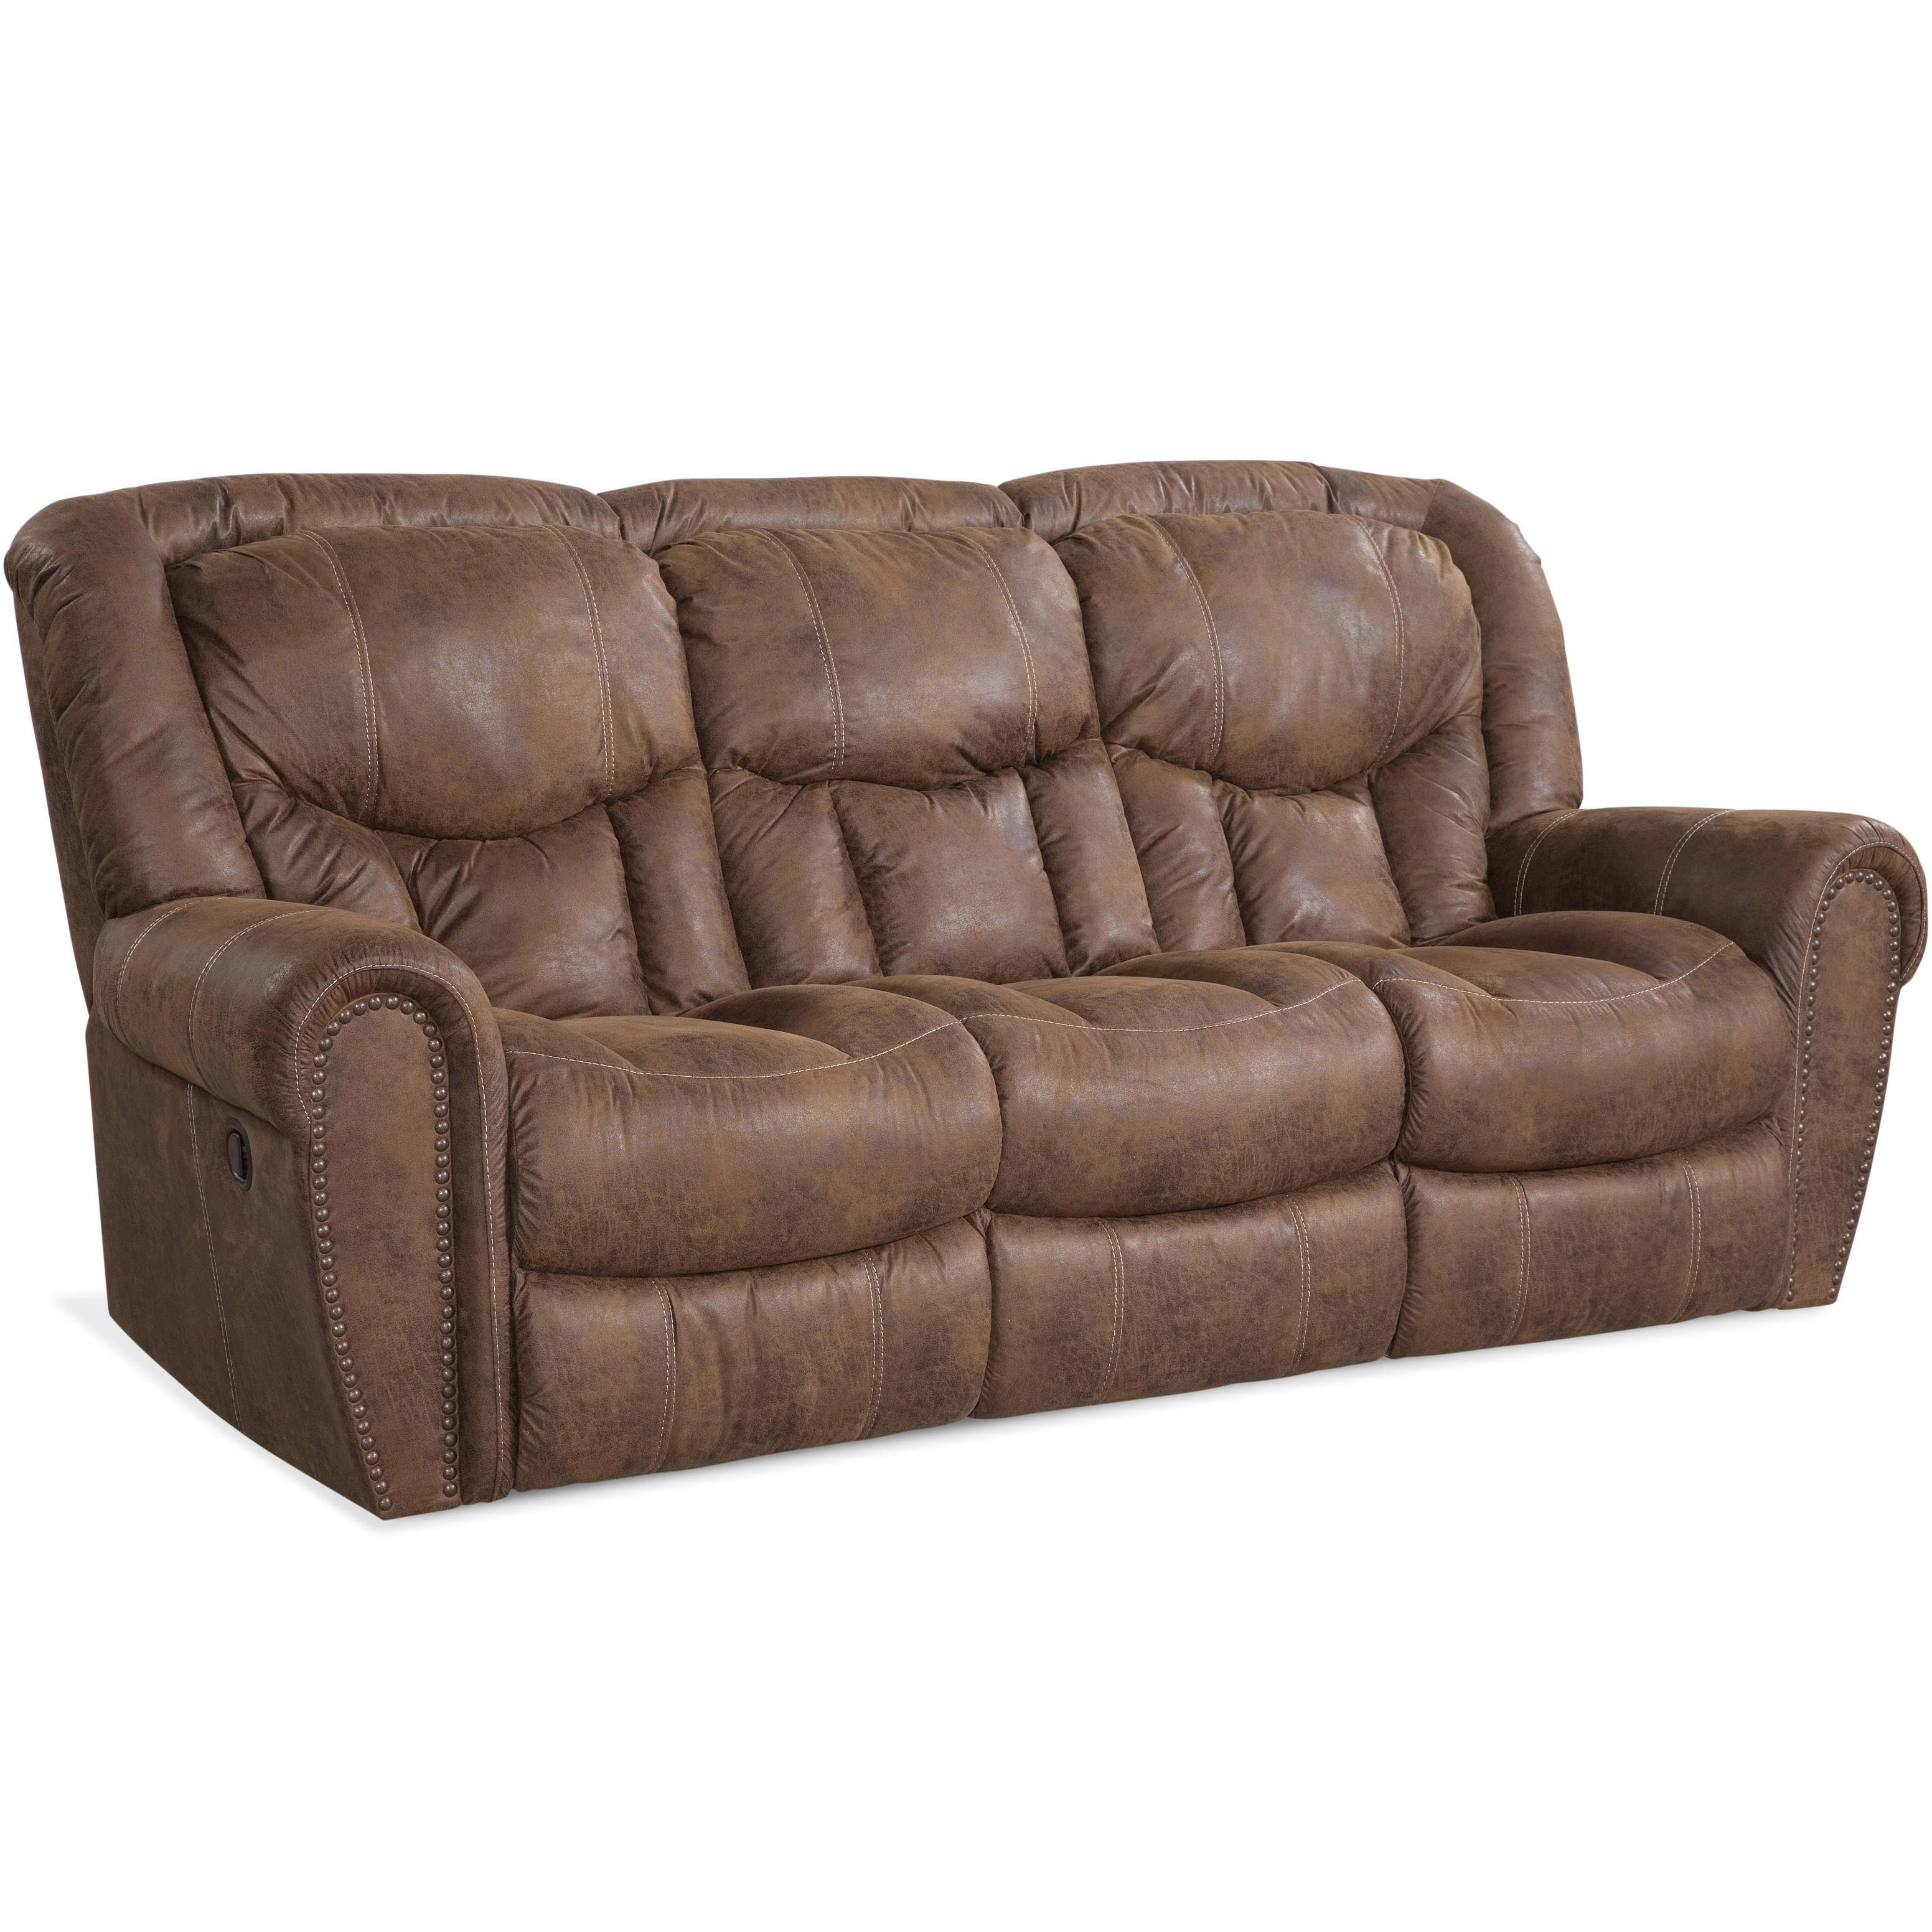 HomeStretch 123 Collection Traditional Reclining Sofa - Item Number: 123-30-17